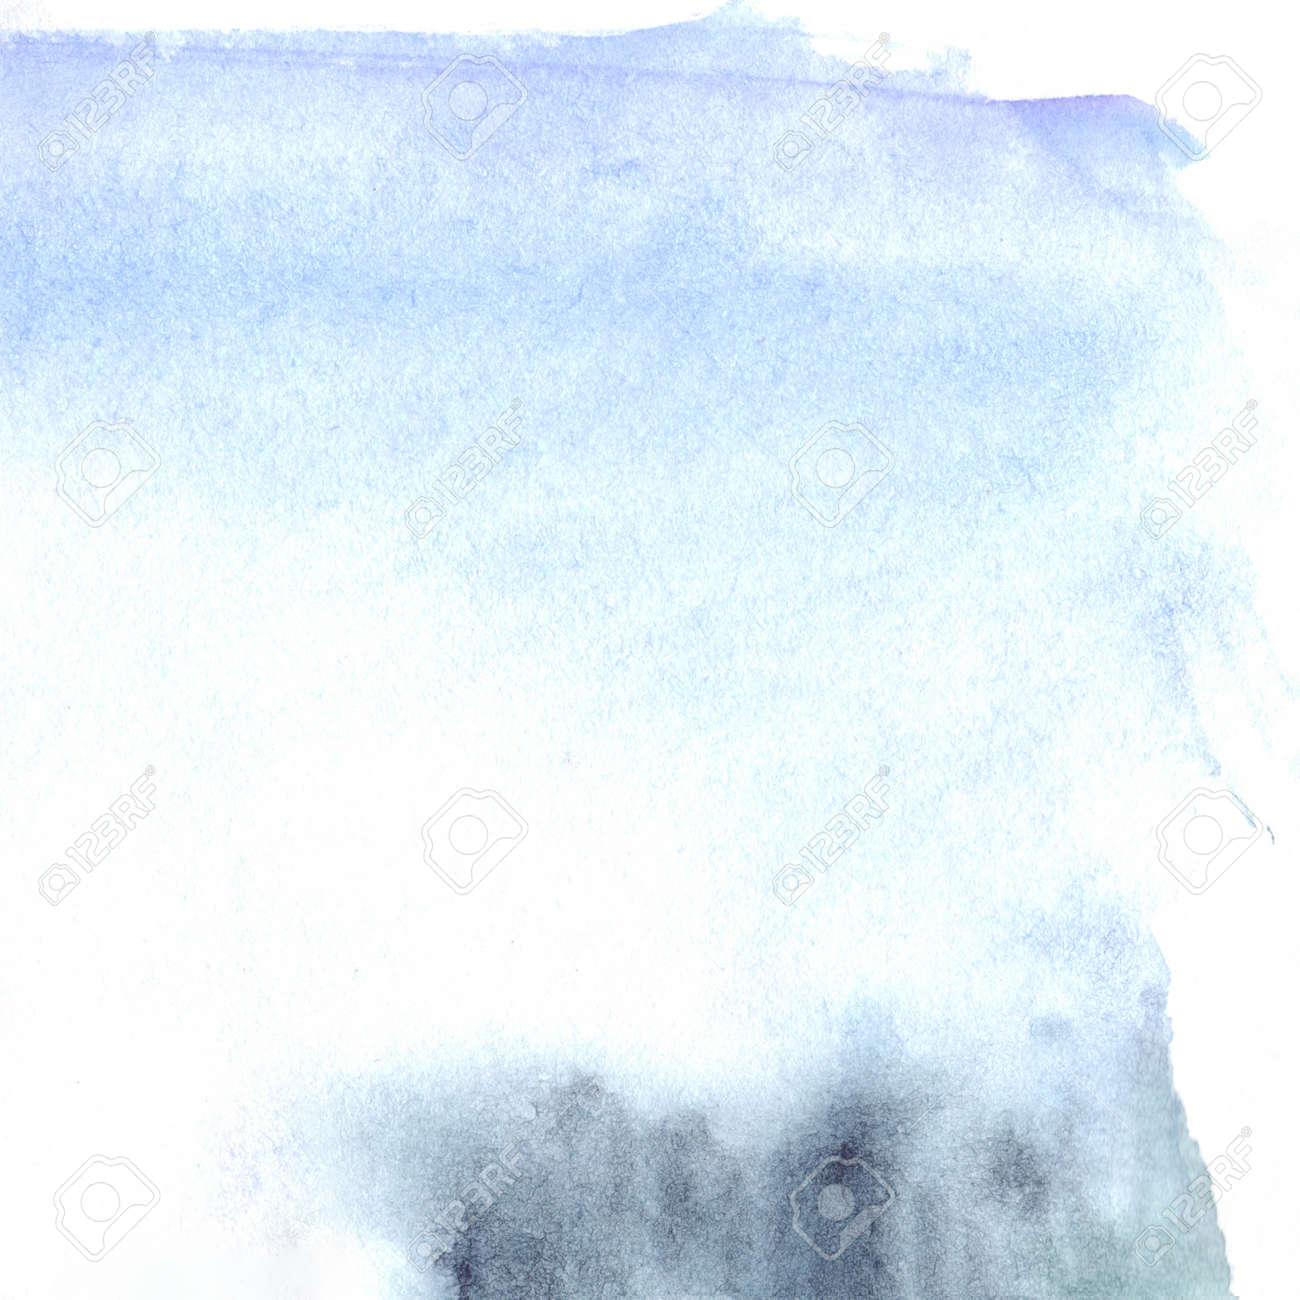 design templates textures watercolor texture ecommerce templates 84493687 watercolor blue white sky template texture background stock - Wwwresume Formatcom